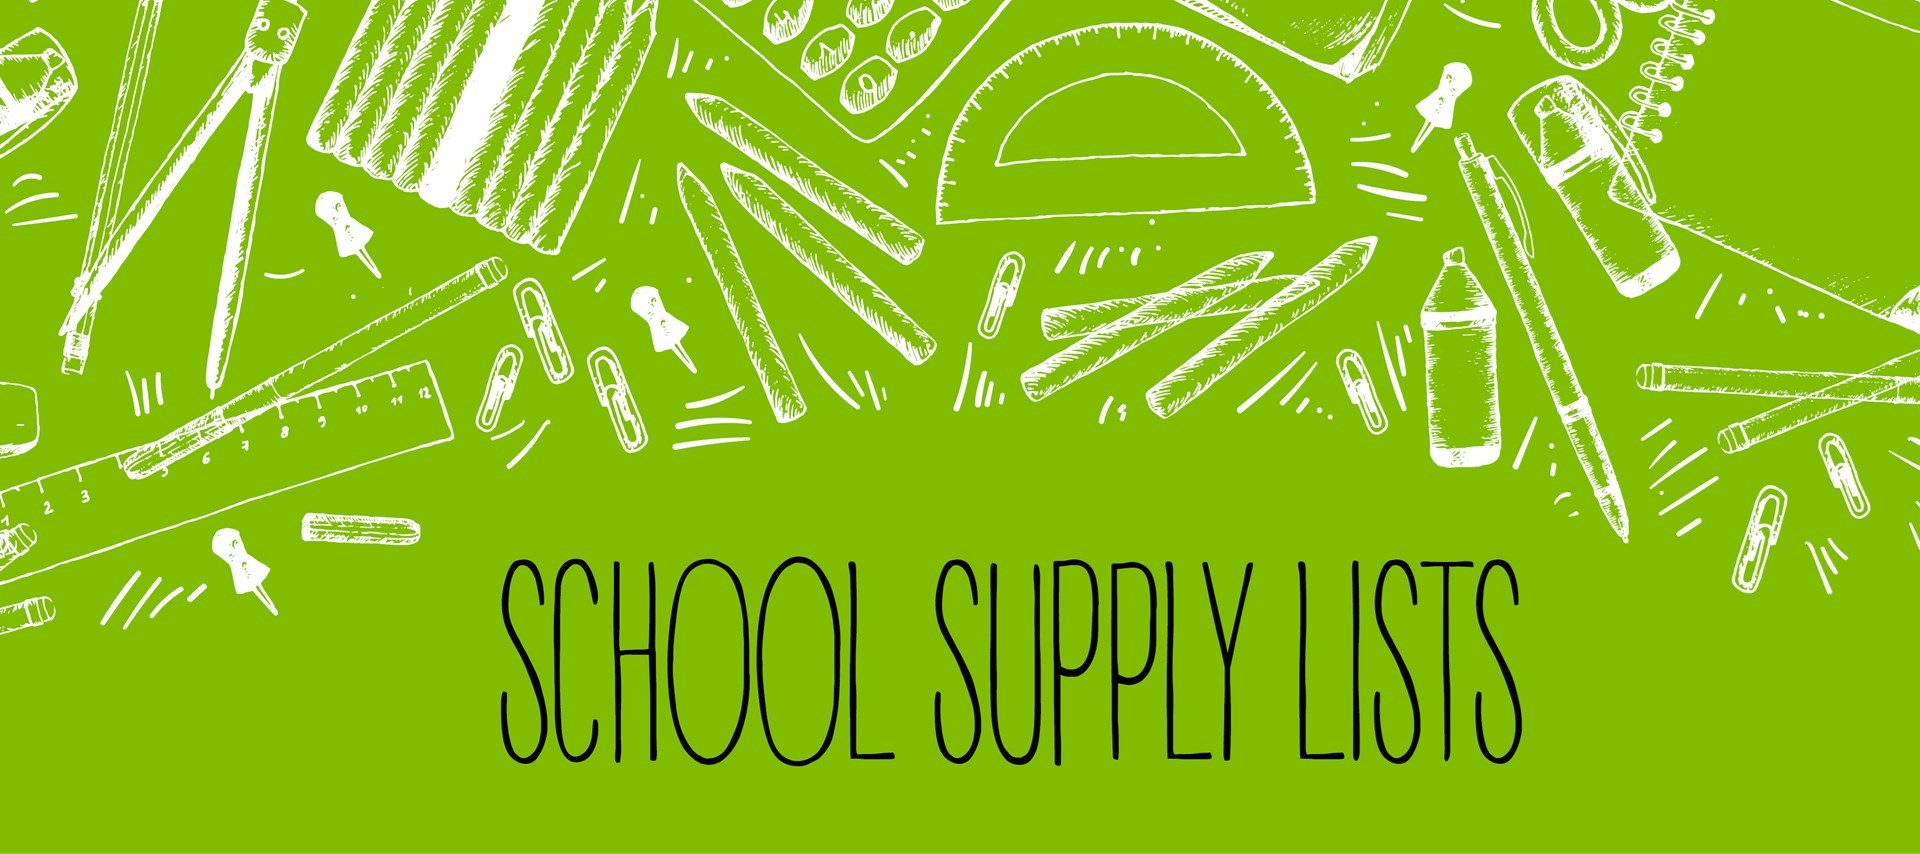 W.P. Bate 2018-19 Supply List